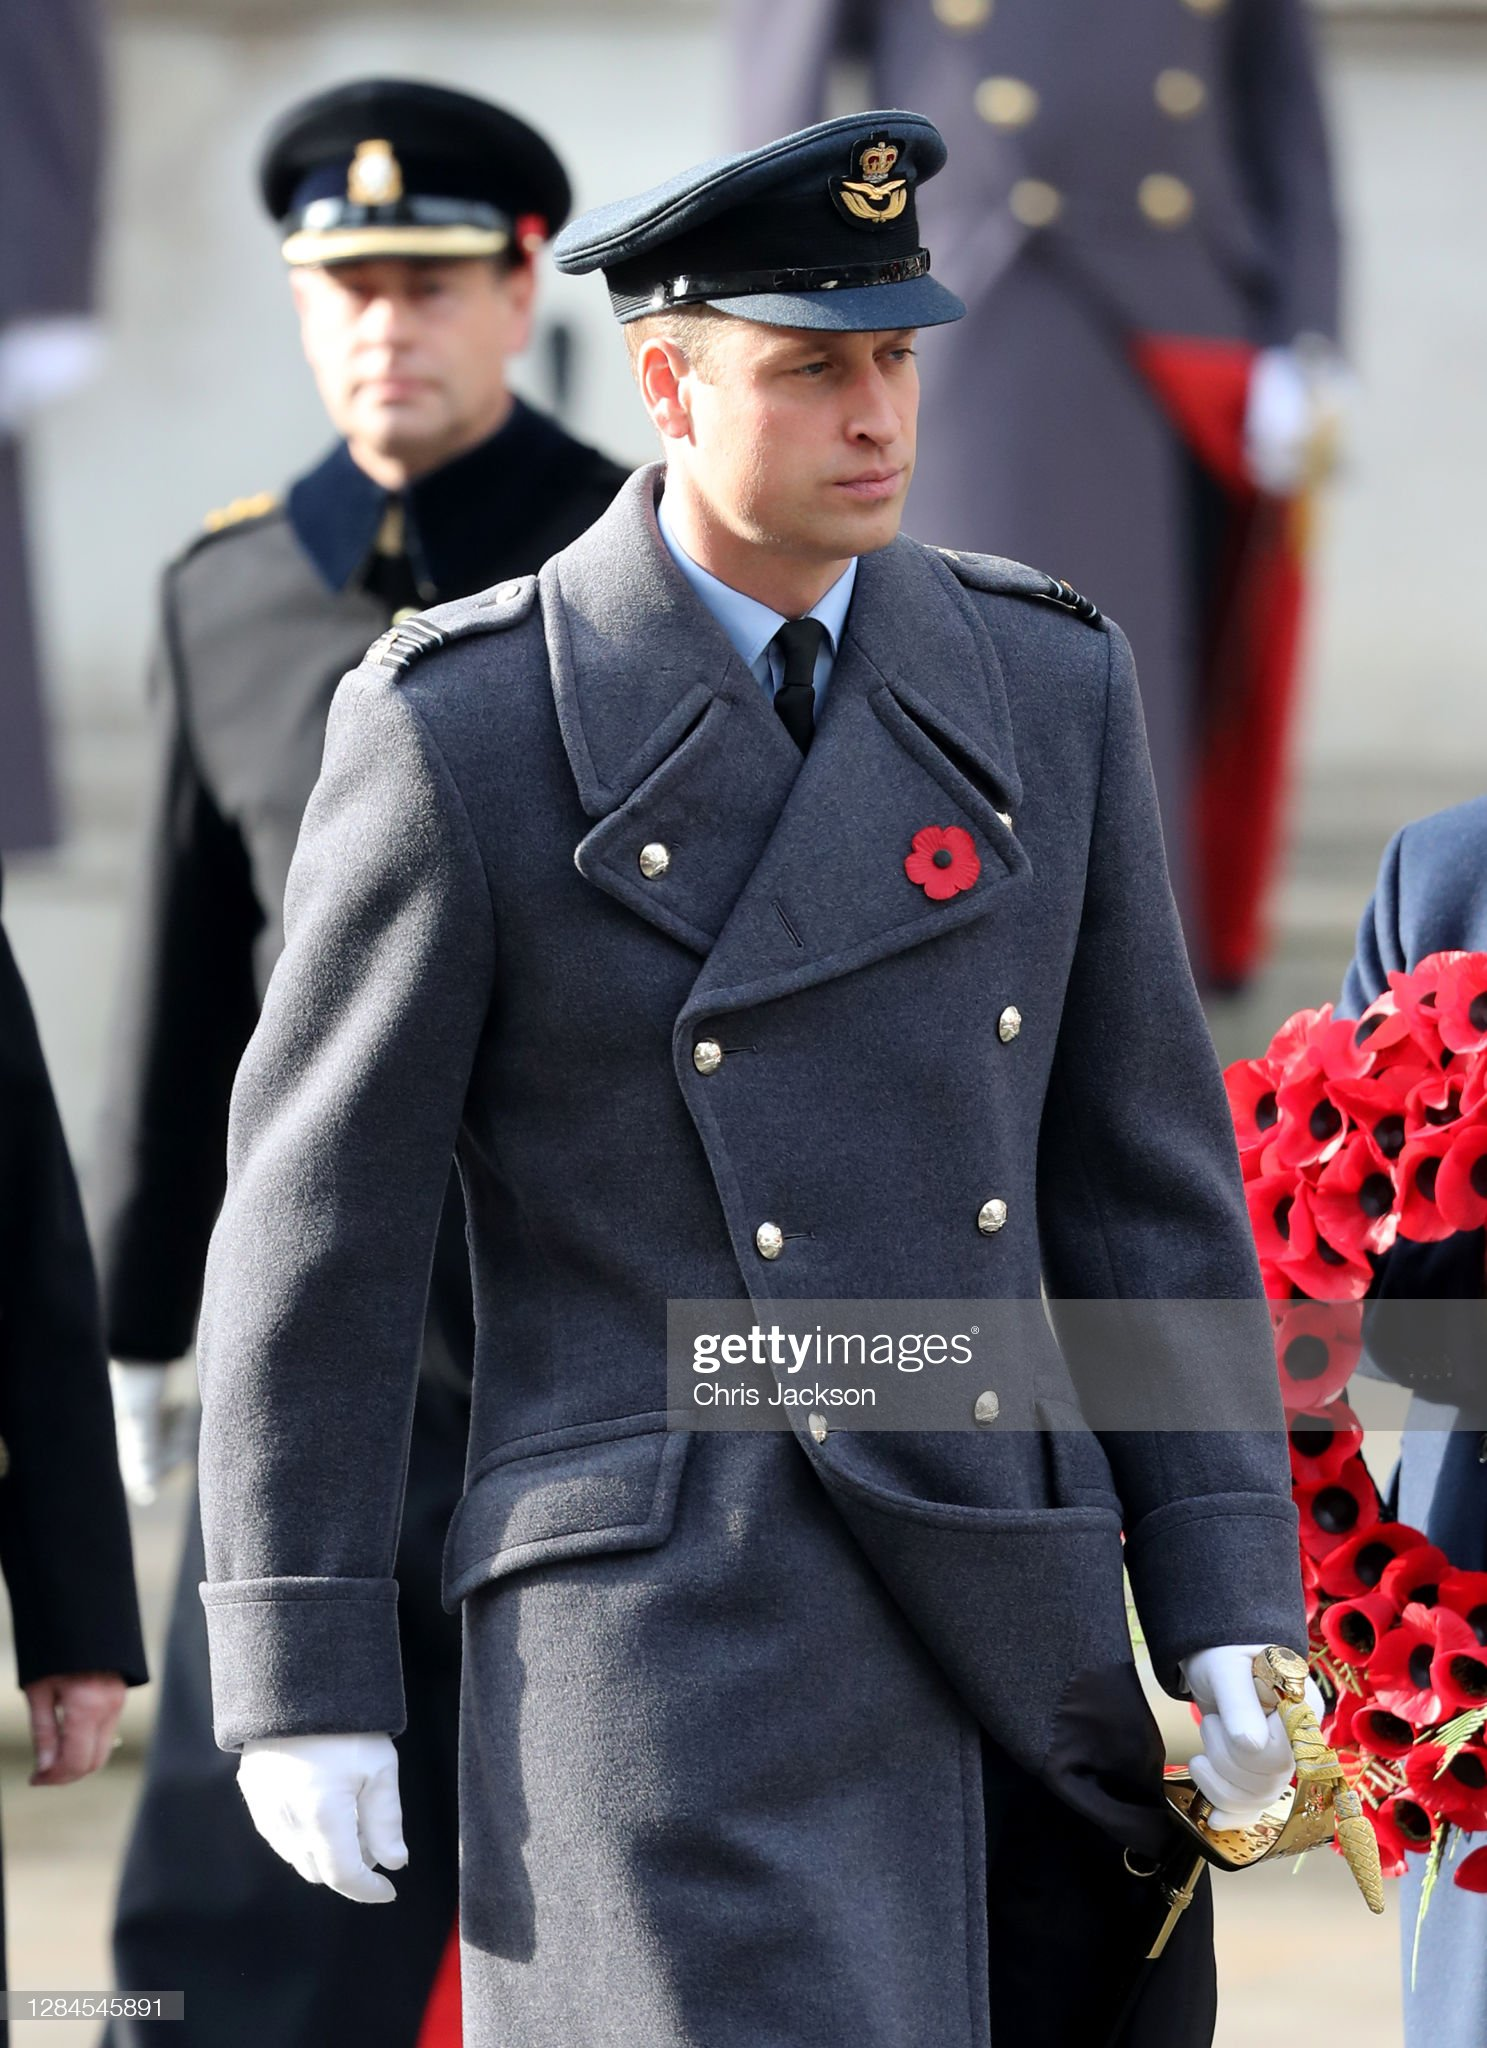 https://media.gettyimages.com/photos/prince-william-duke-of-cambridge-during-the-national-service-of-at-picture-id1284545891?s=2048x2048